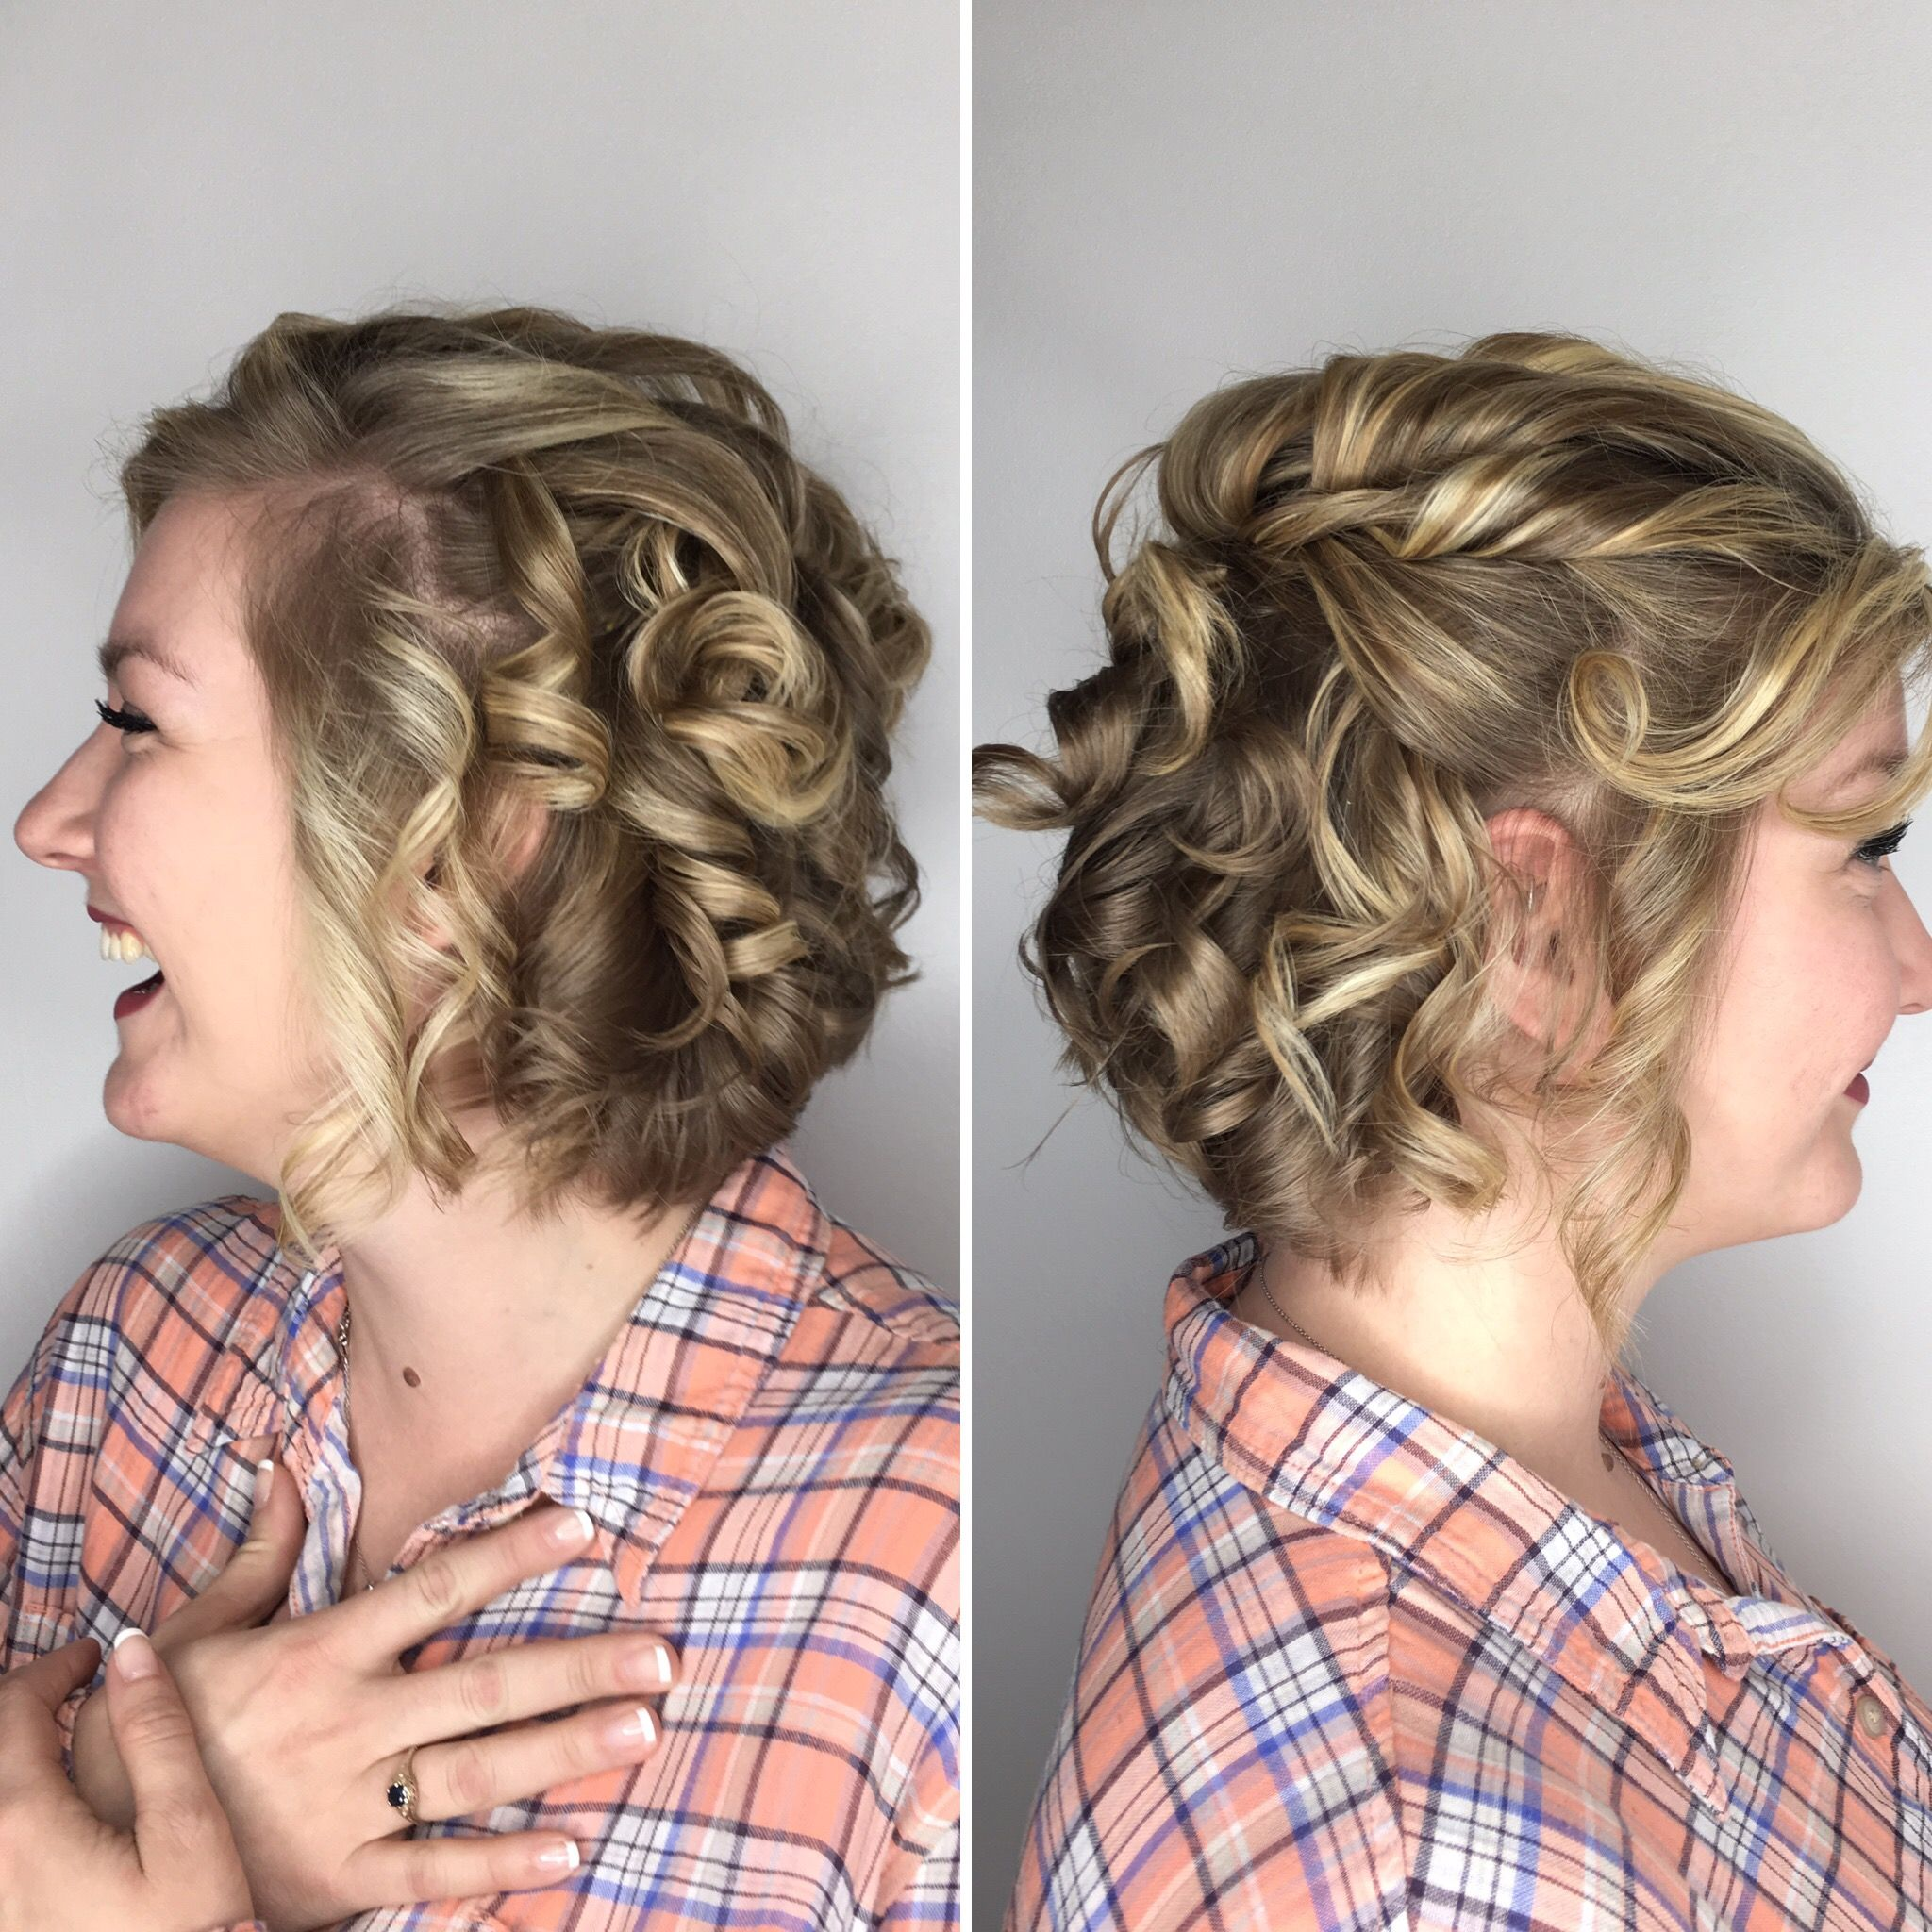 Stunning curls for short hair with a semi formal half updo using